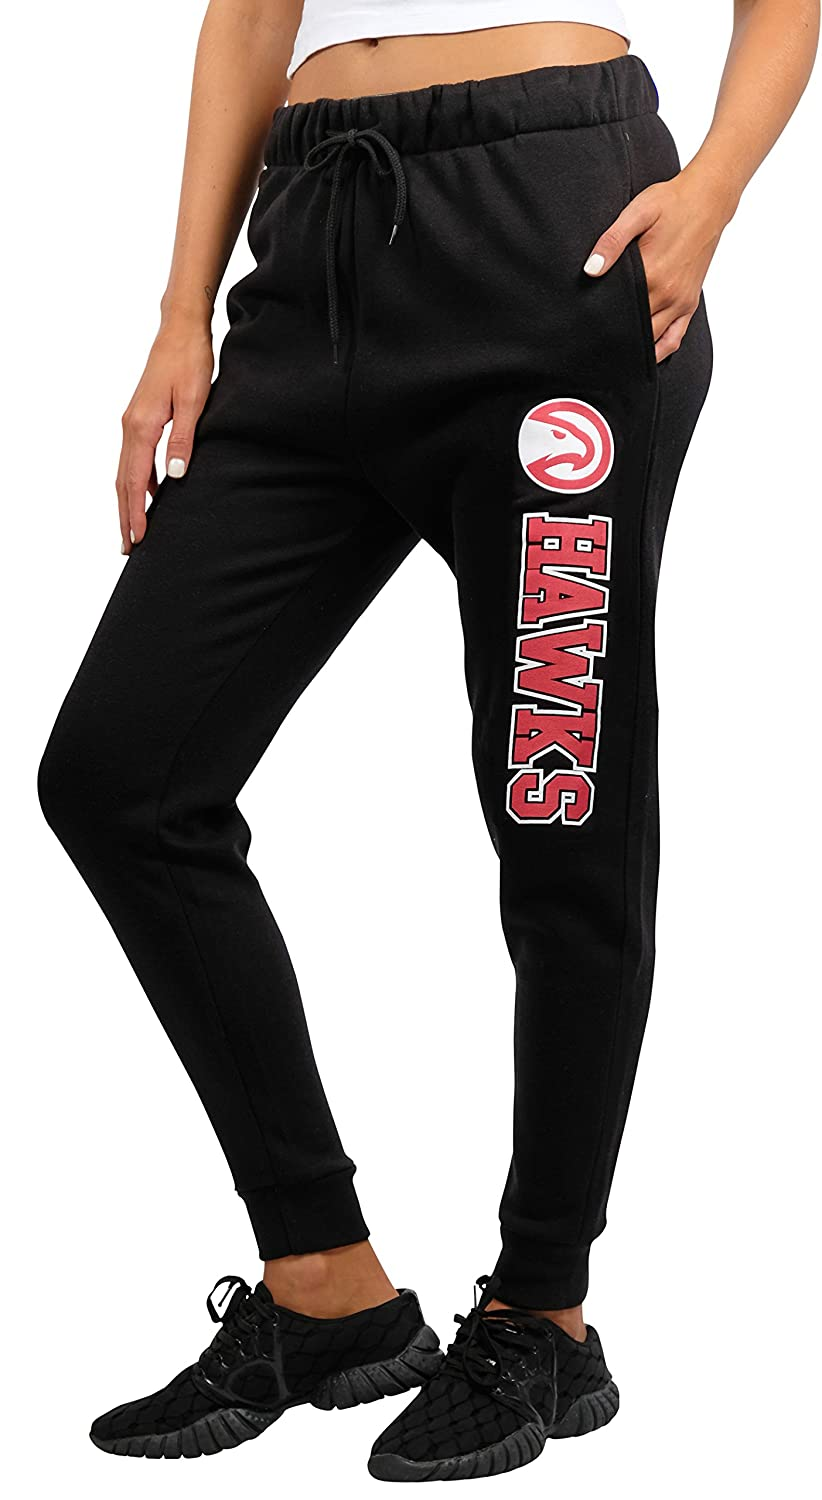 Sweatpants You Can Wear Out Of The House | Jogger pants